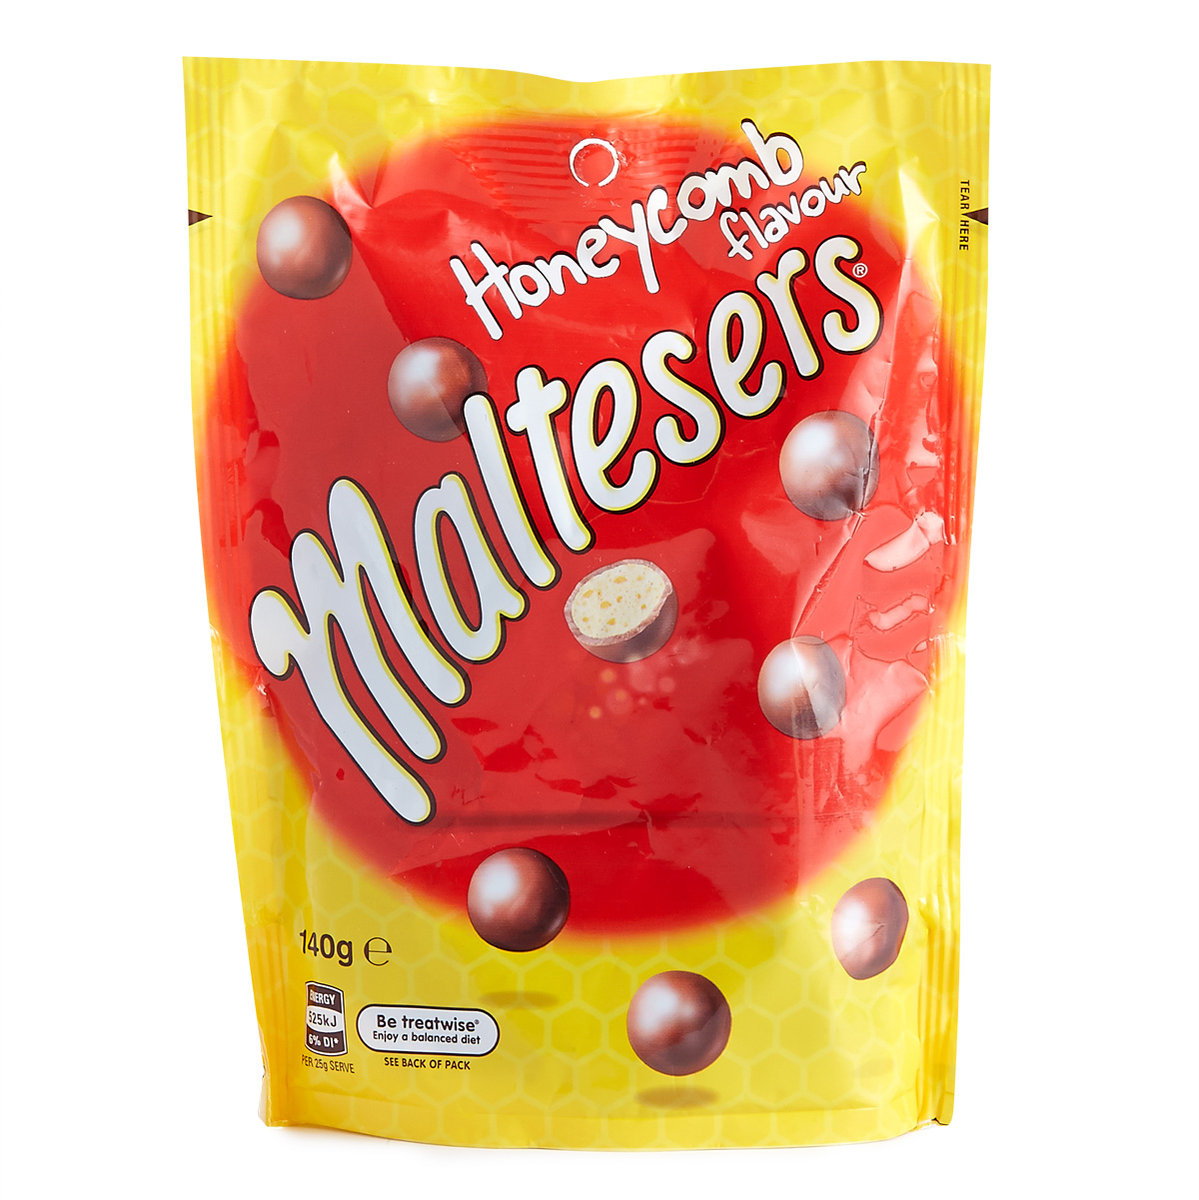 Image result for honeycomb maltesers